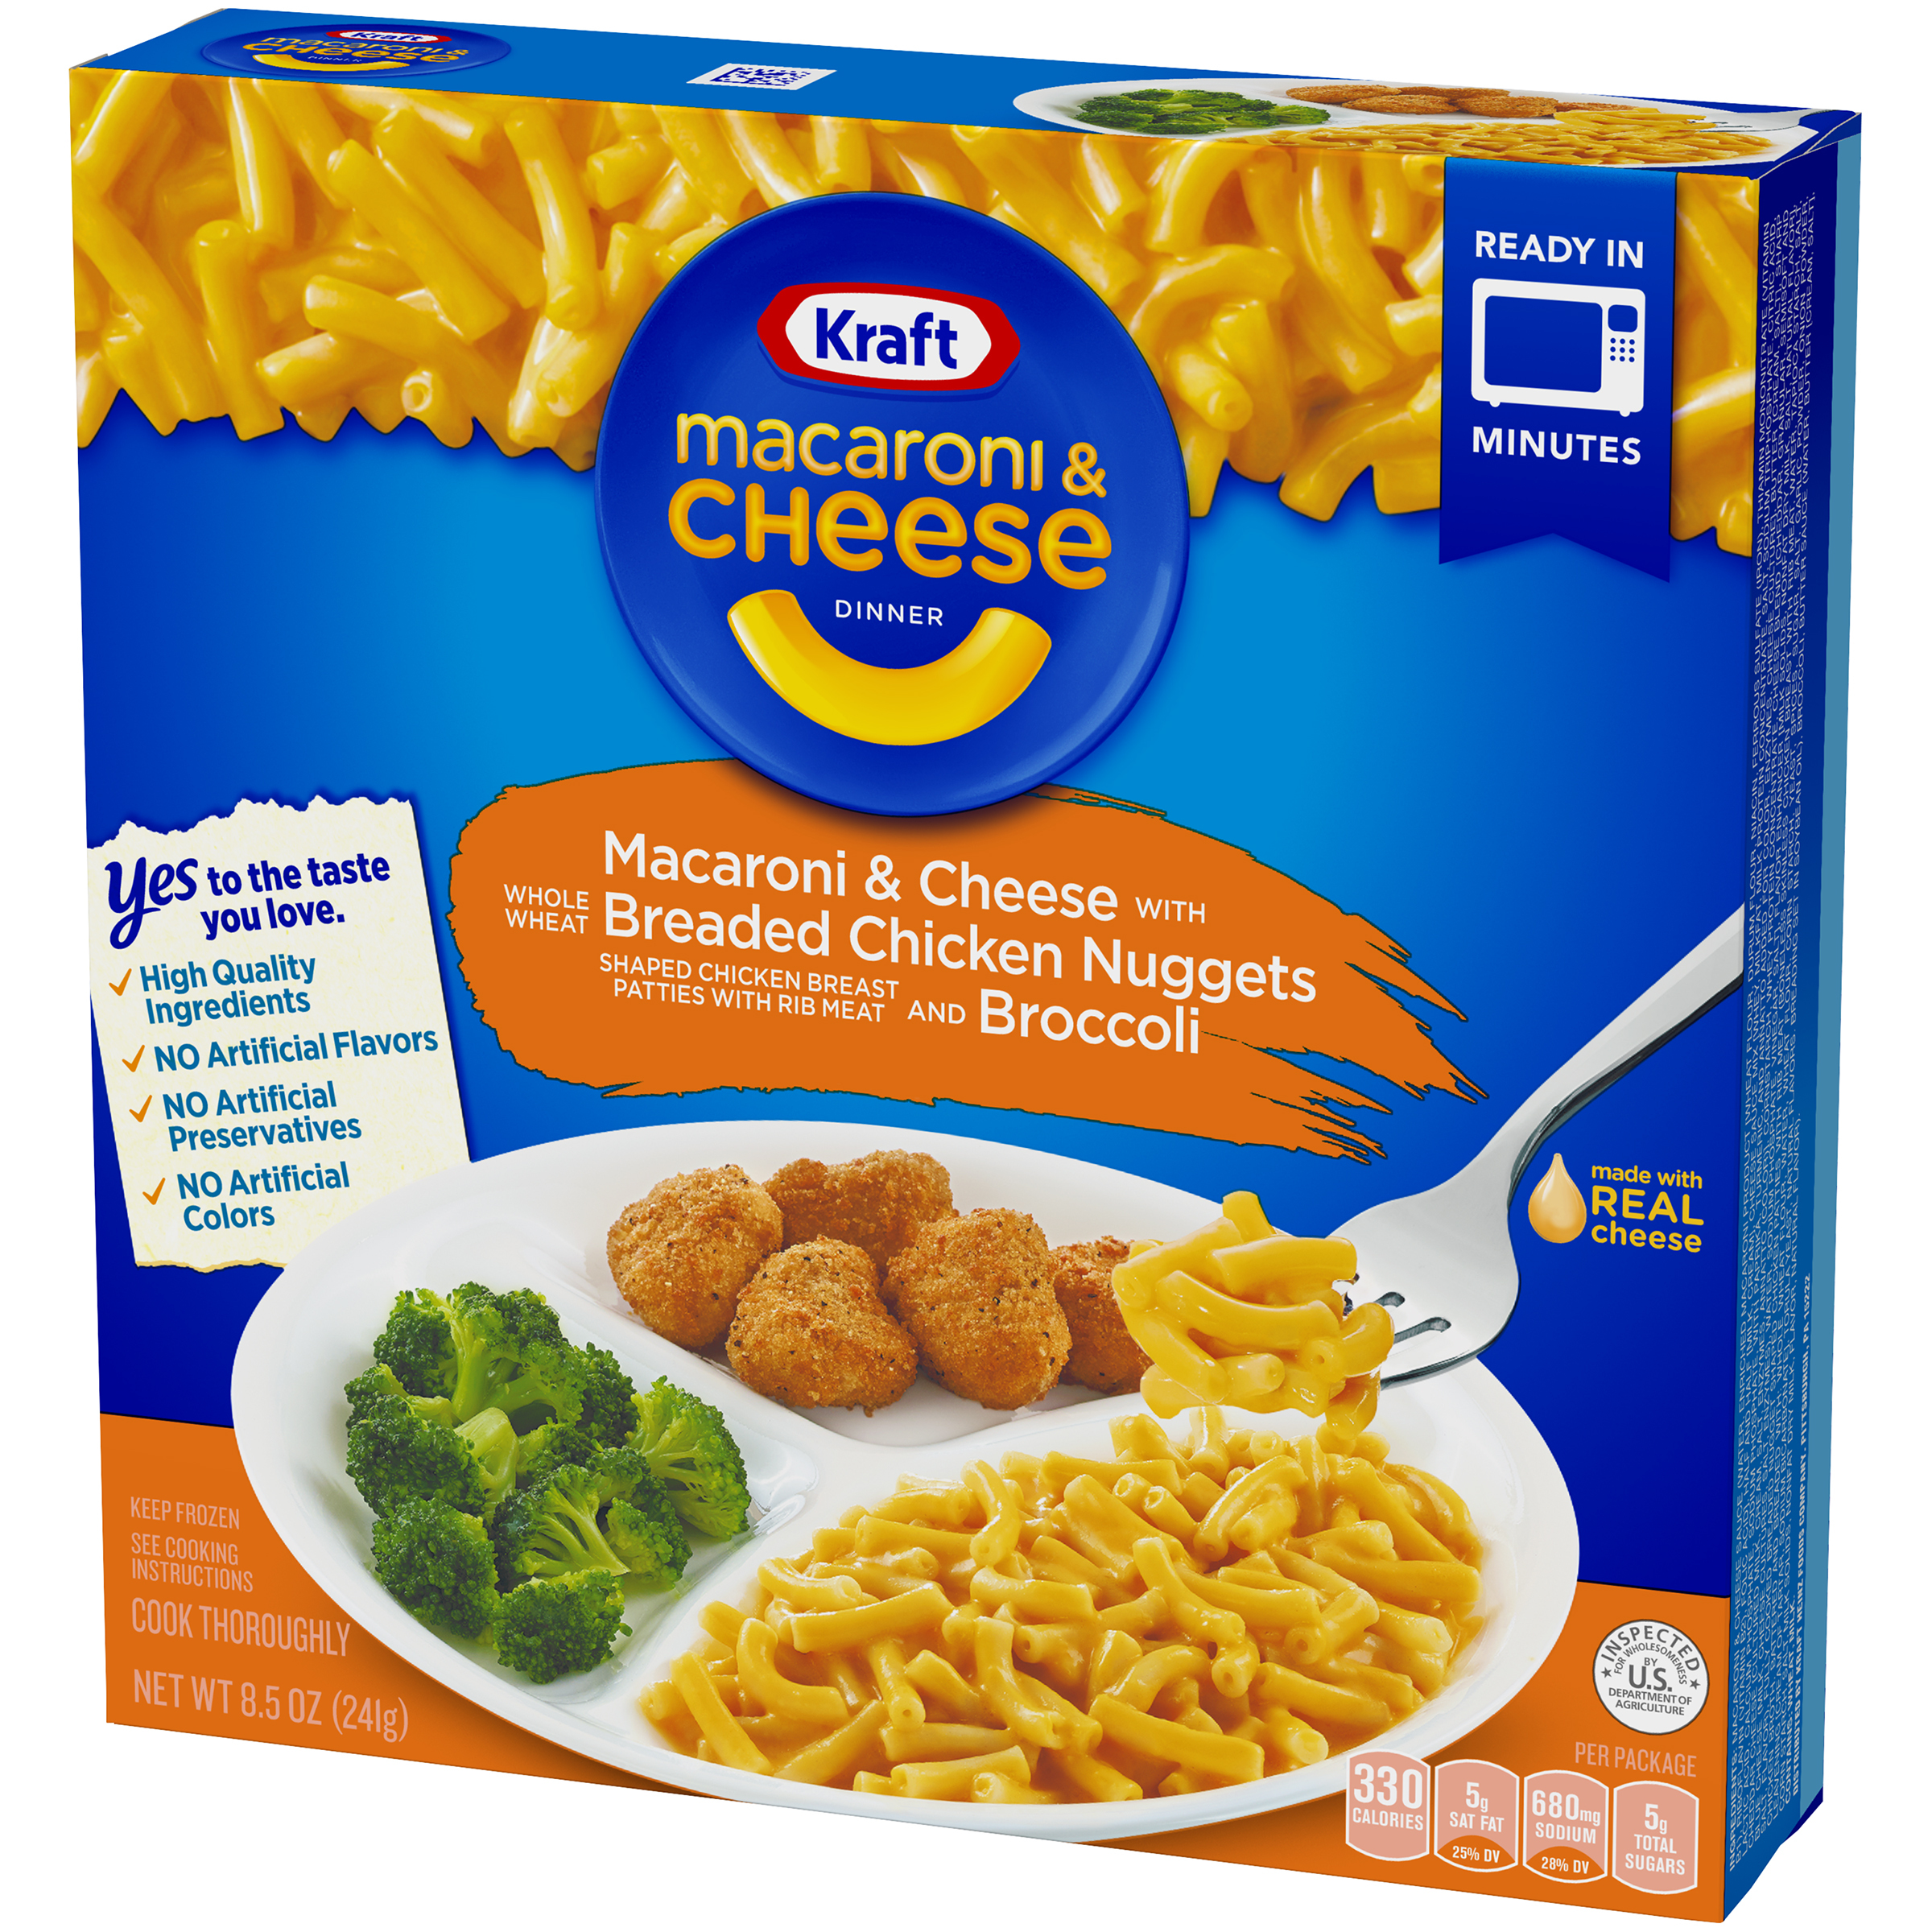 Kraft Macaroni And Cheese Dinner With Breaded Chicken Nuggets And Broccoli 8 5 Oz Box Walmart Com Walmart Com